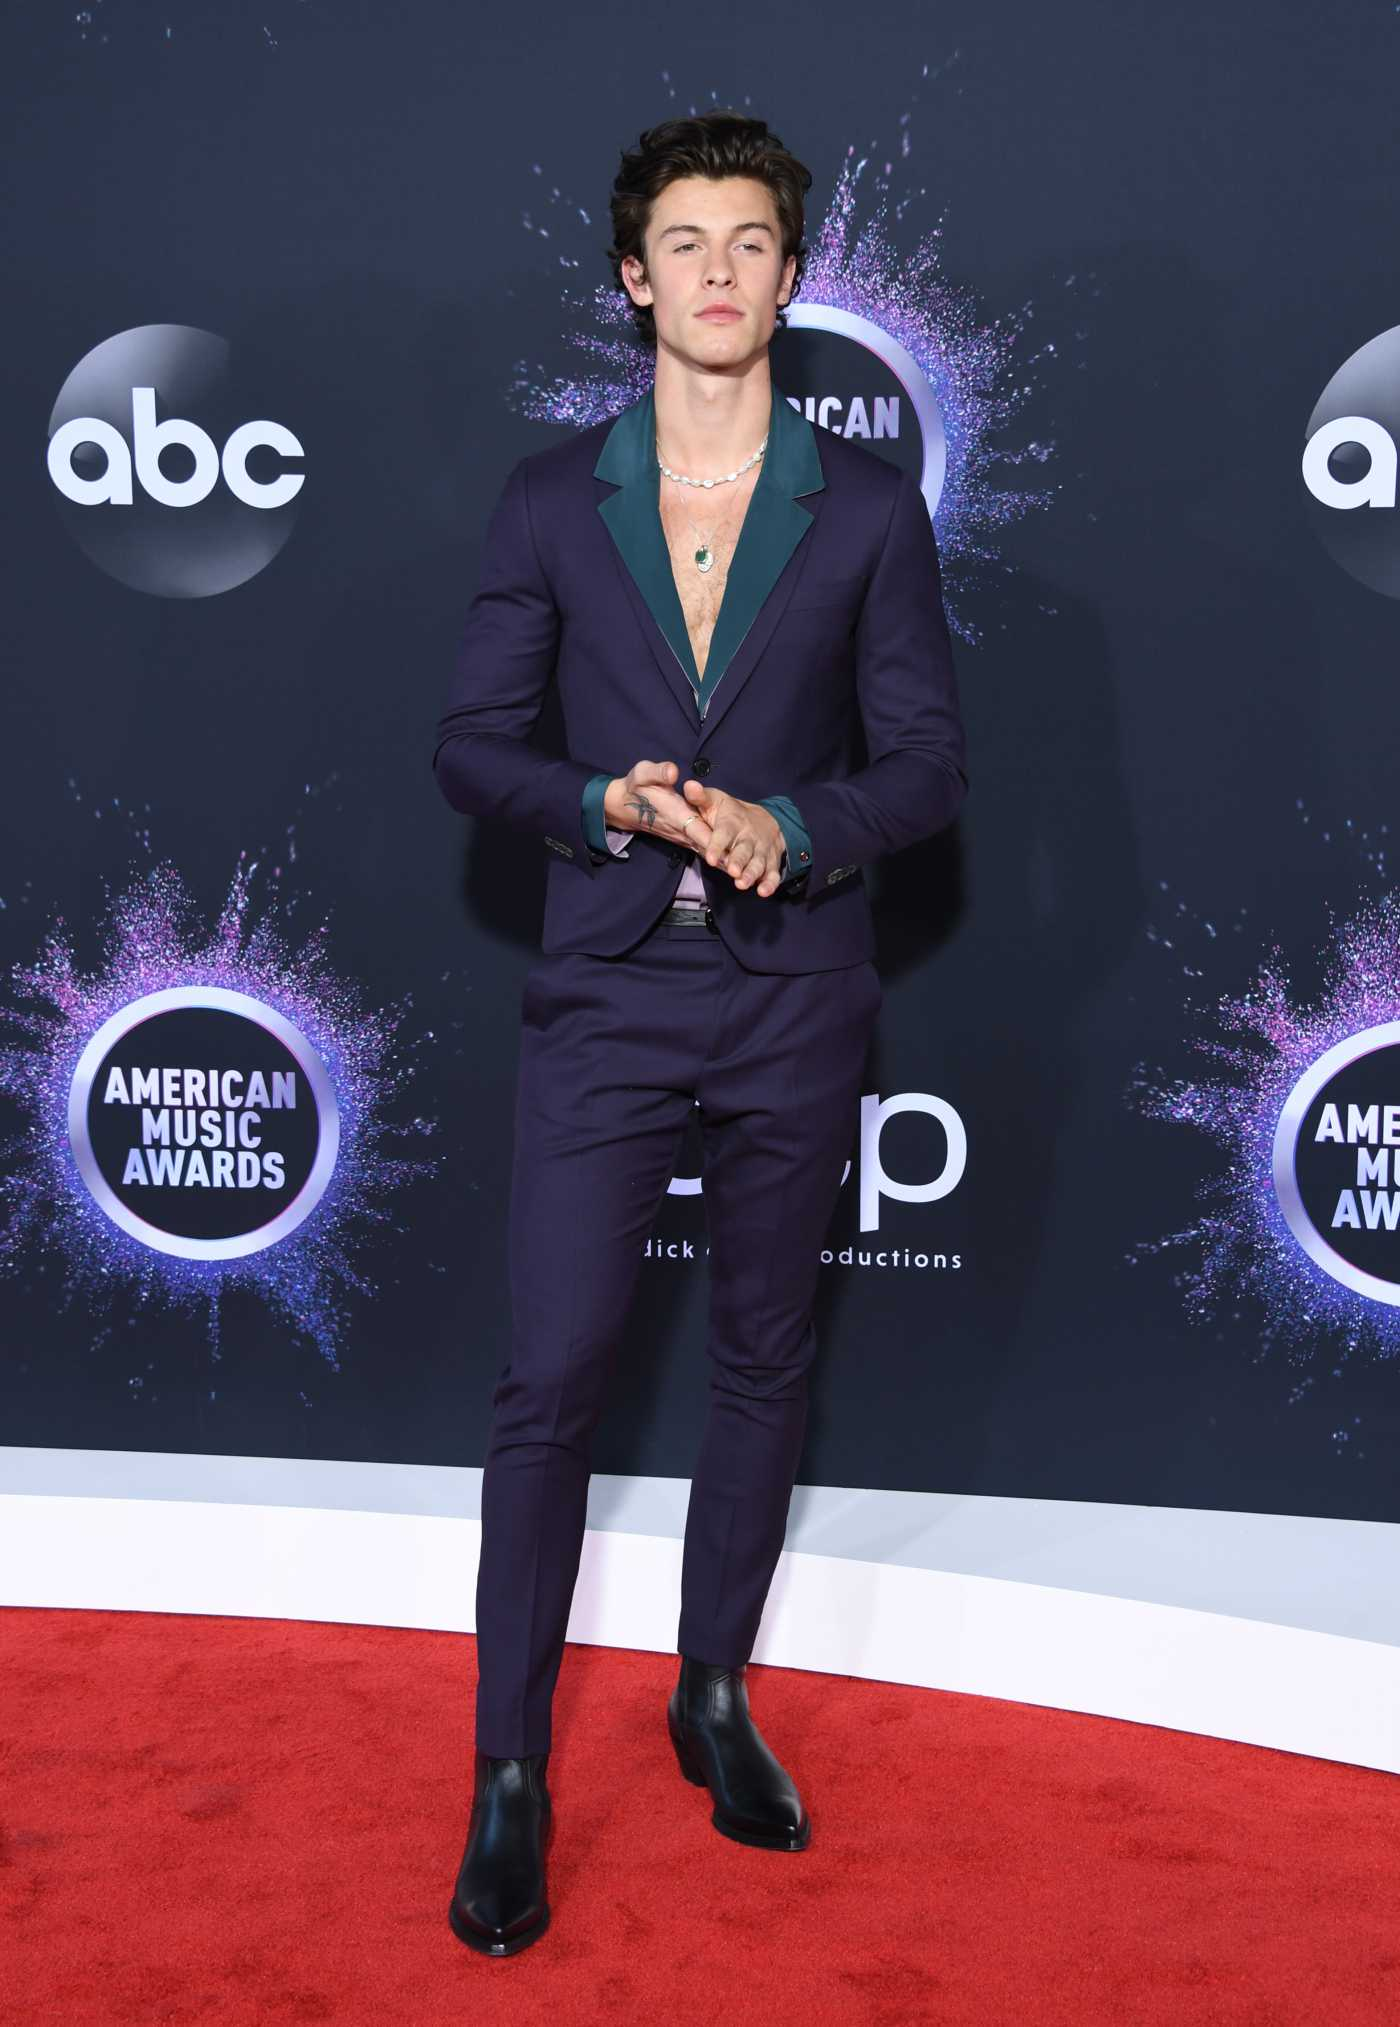 Shawn Mendes Attends the 2019 American Music Awards at Microsoft Theater in Los Angeles 11/24/2019